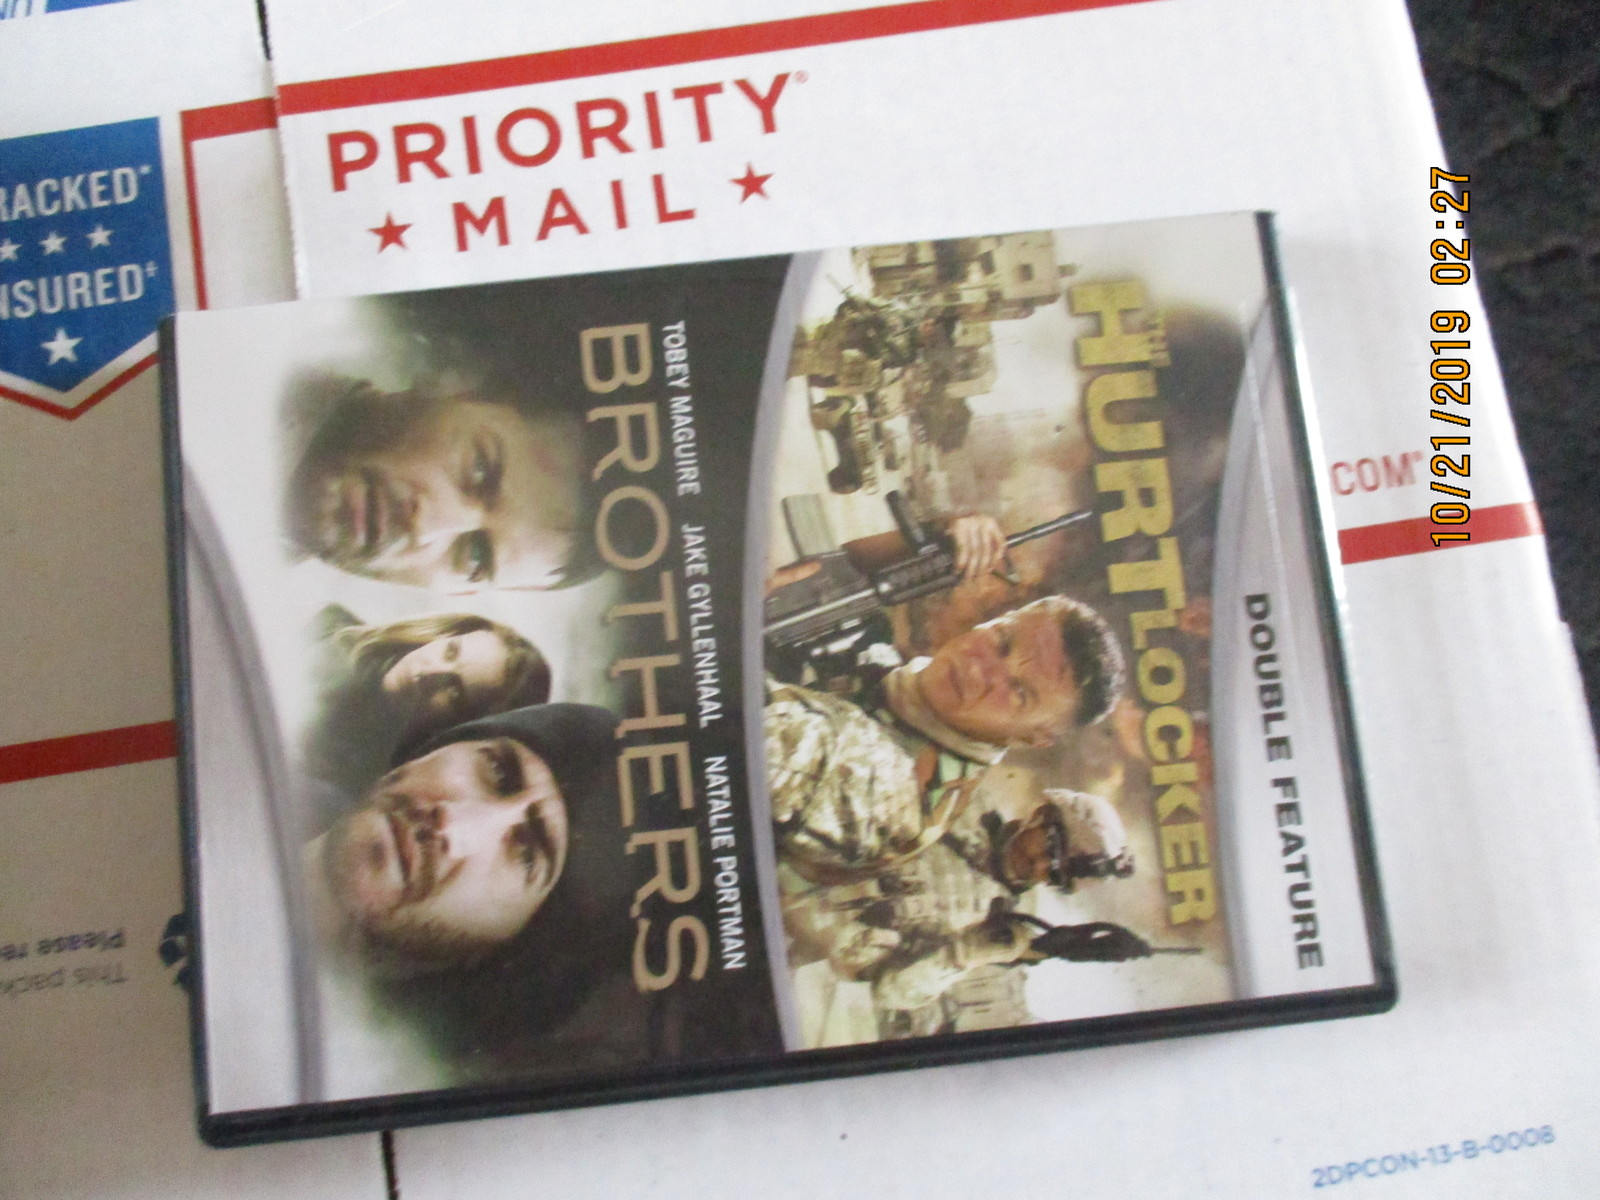 Double Feature: The Hurt Locker and Brothers DVD